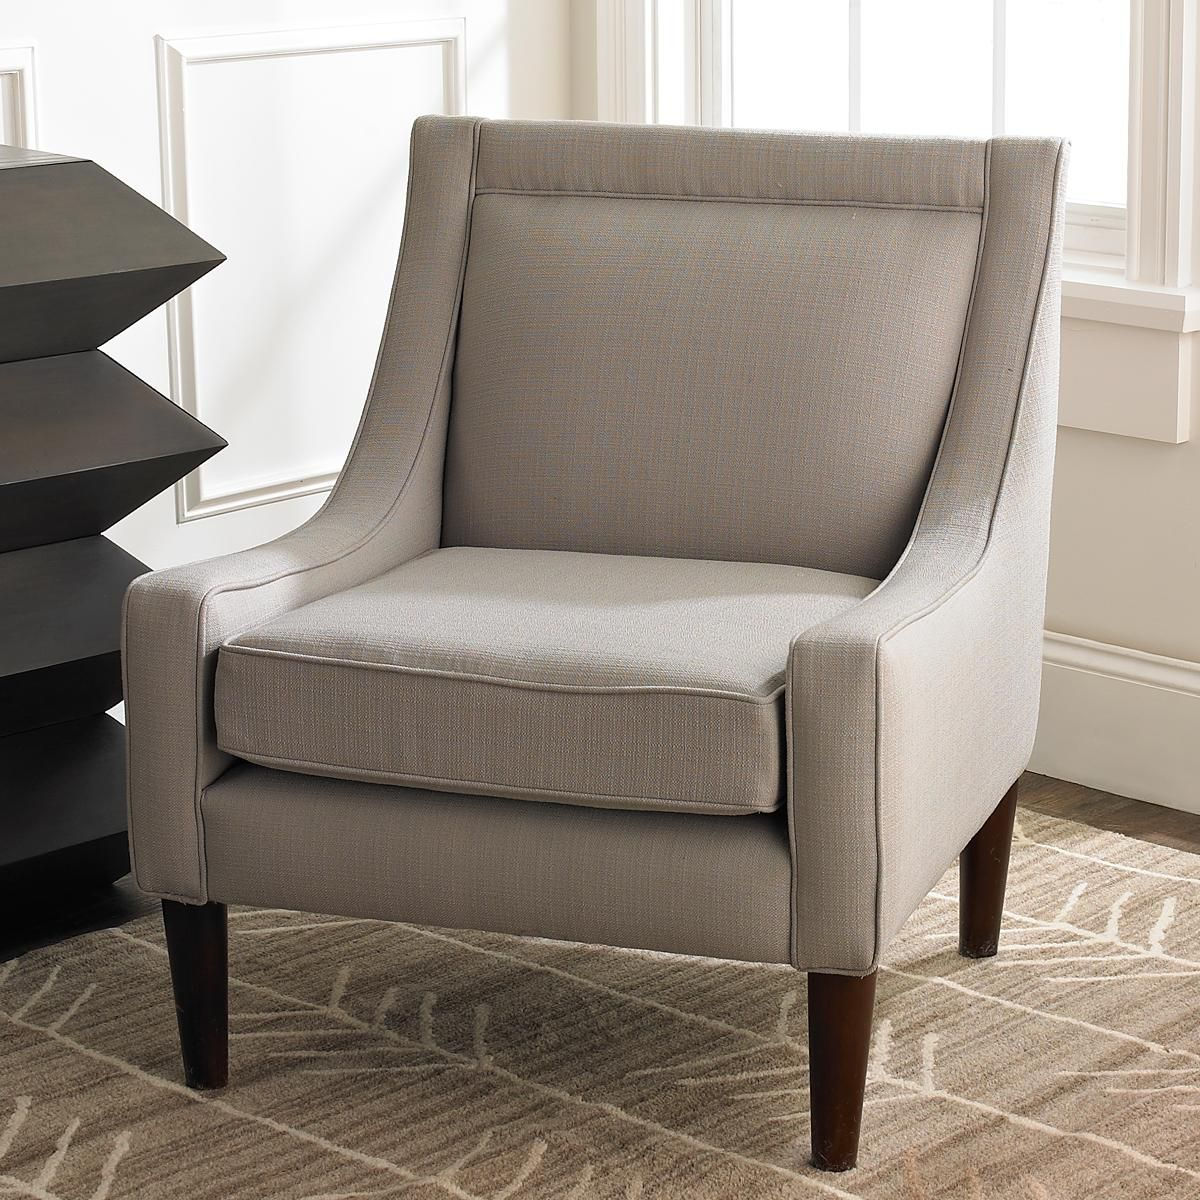 Best Modern Sloped Arm Side Chair This Trendy Arm Chair Is As 400 x 300